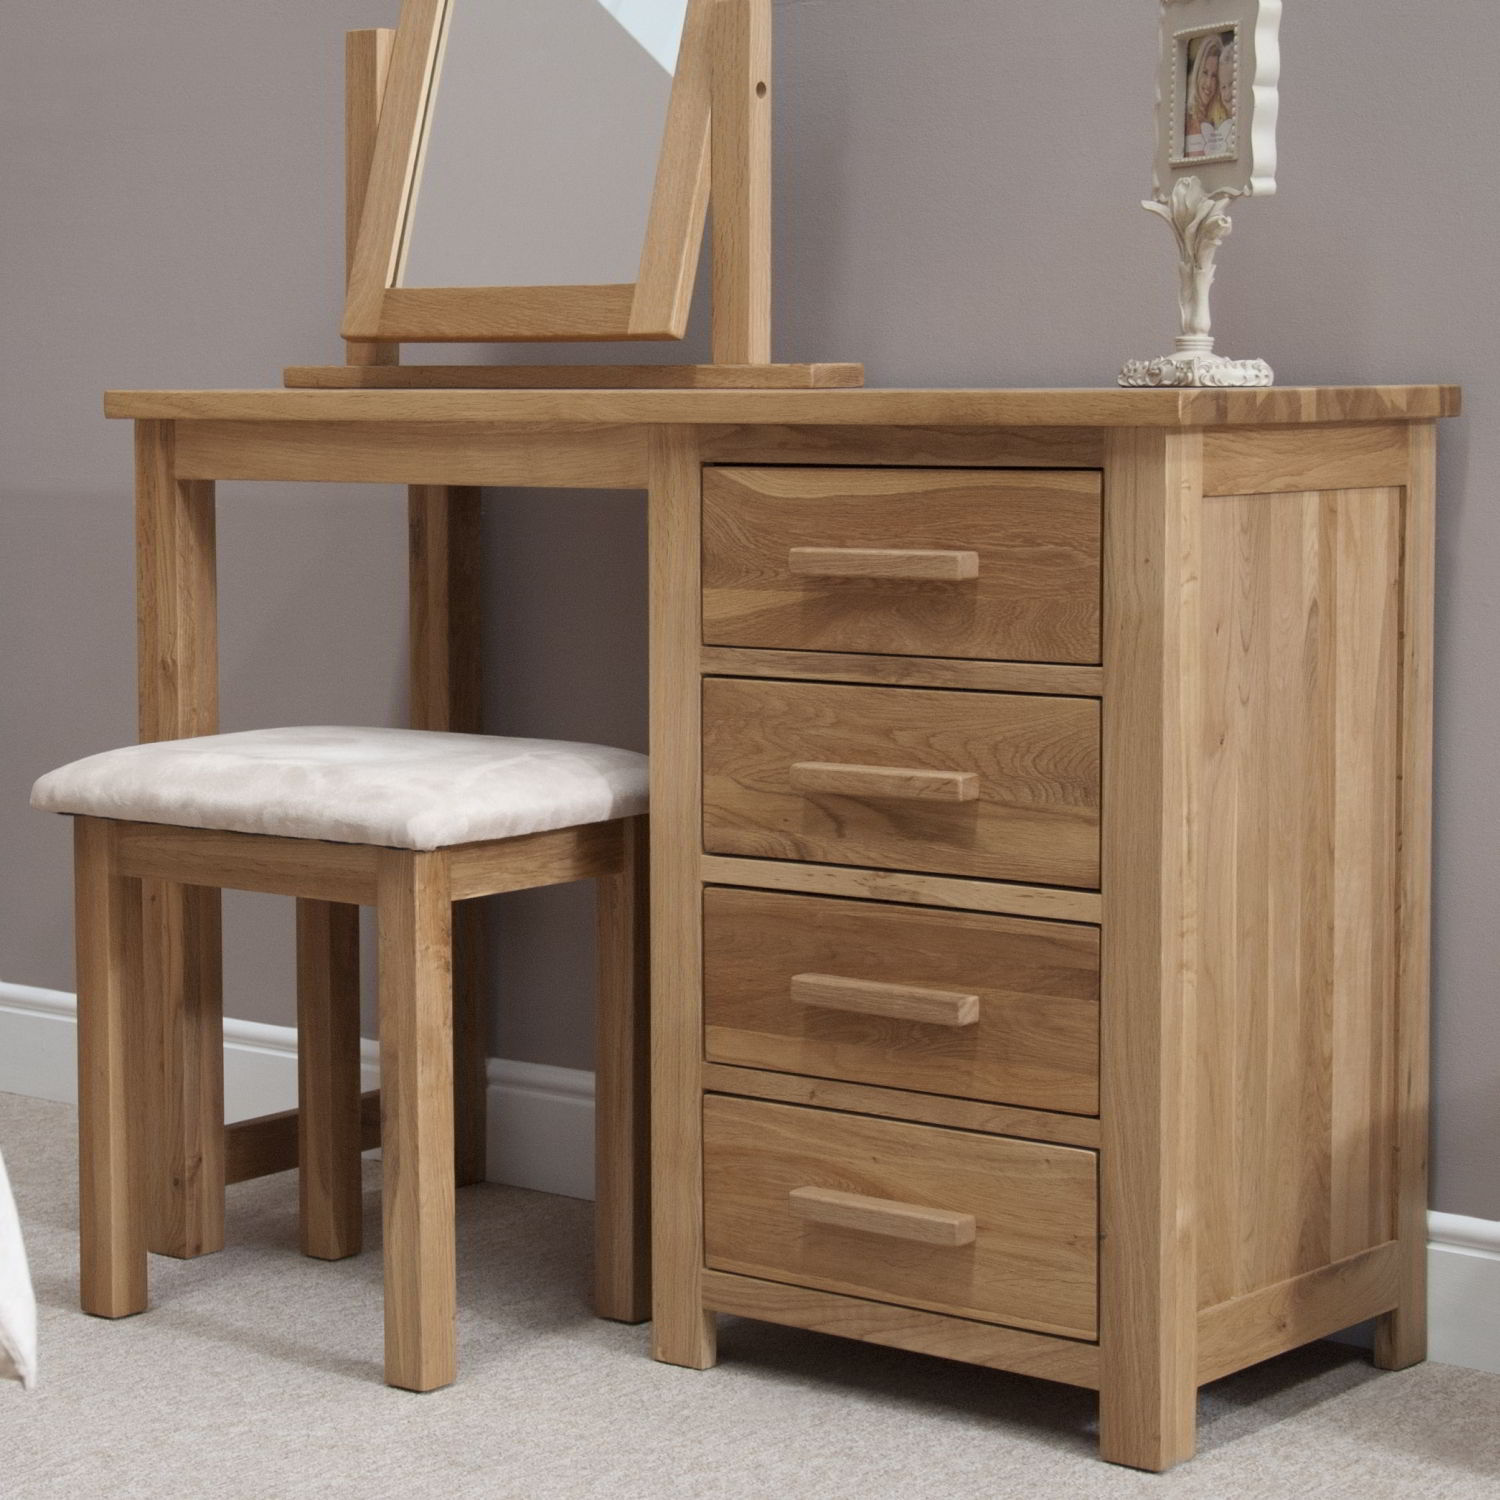 Eton Solid Oak Contemporary Bedroom Furniture Dressing. Modern Secretary Desk. Dog Grooming Table. Ms Pacman Cocktail Table. L Table. Portable Massage Table. Ikea Helmer Drawer Unit. Small Storage Cabinets With Drawers. Pct Help Desk